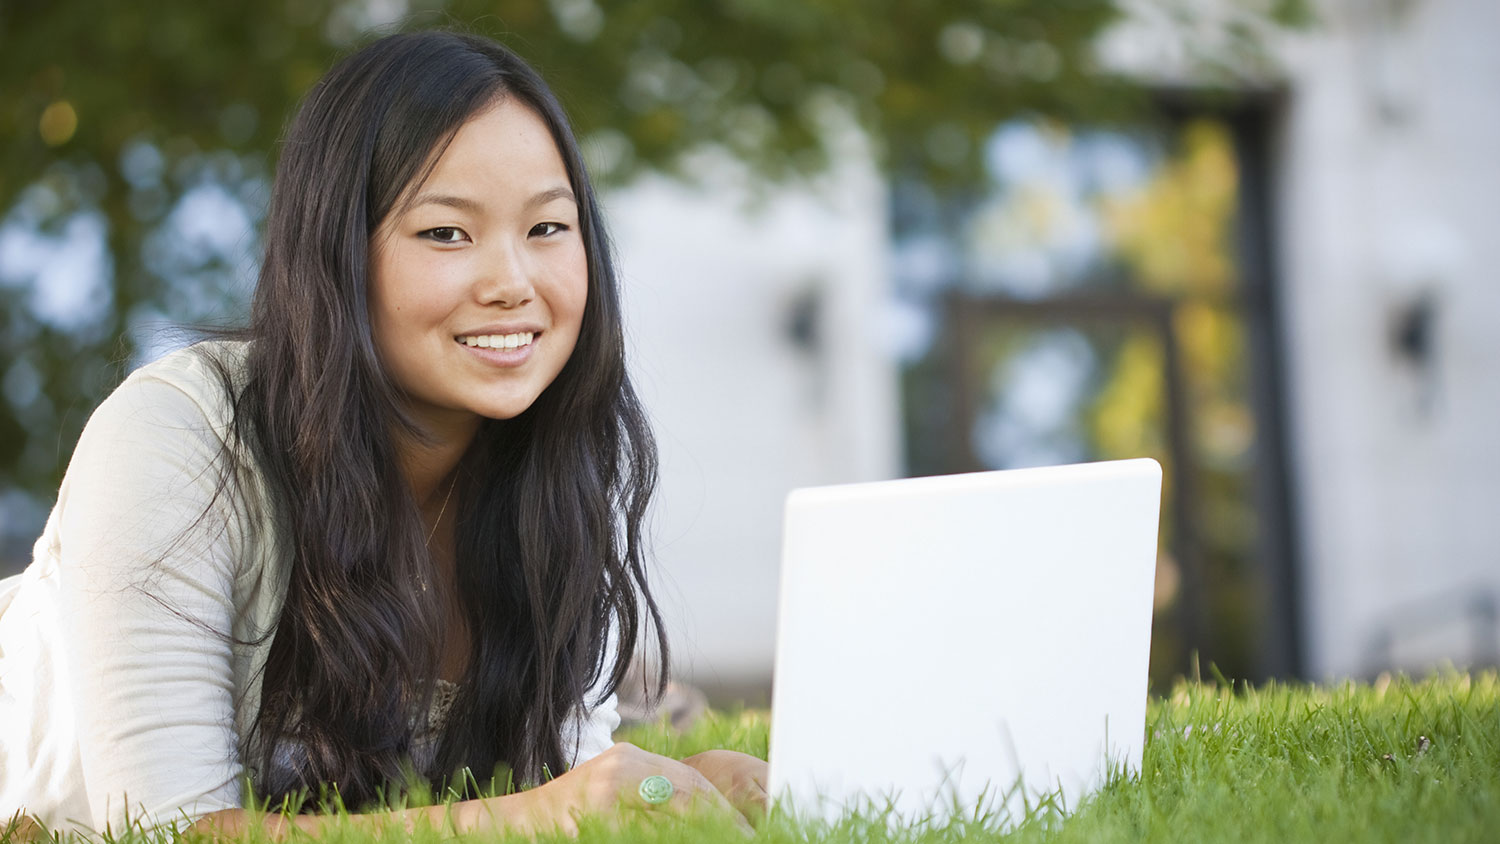 Smiling girl outside with laptop